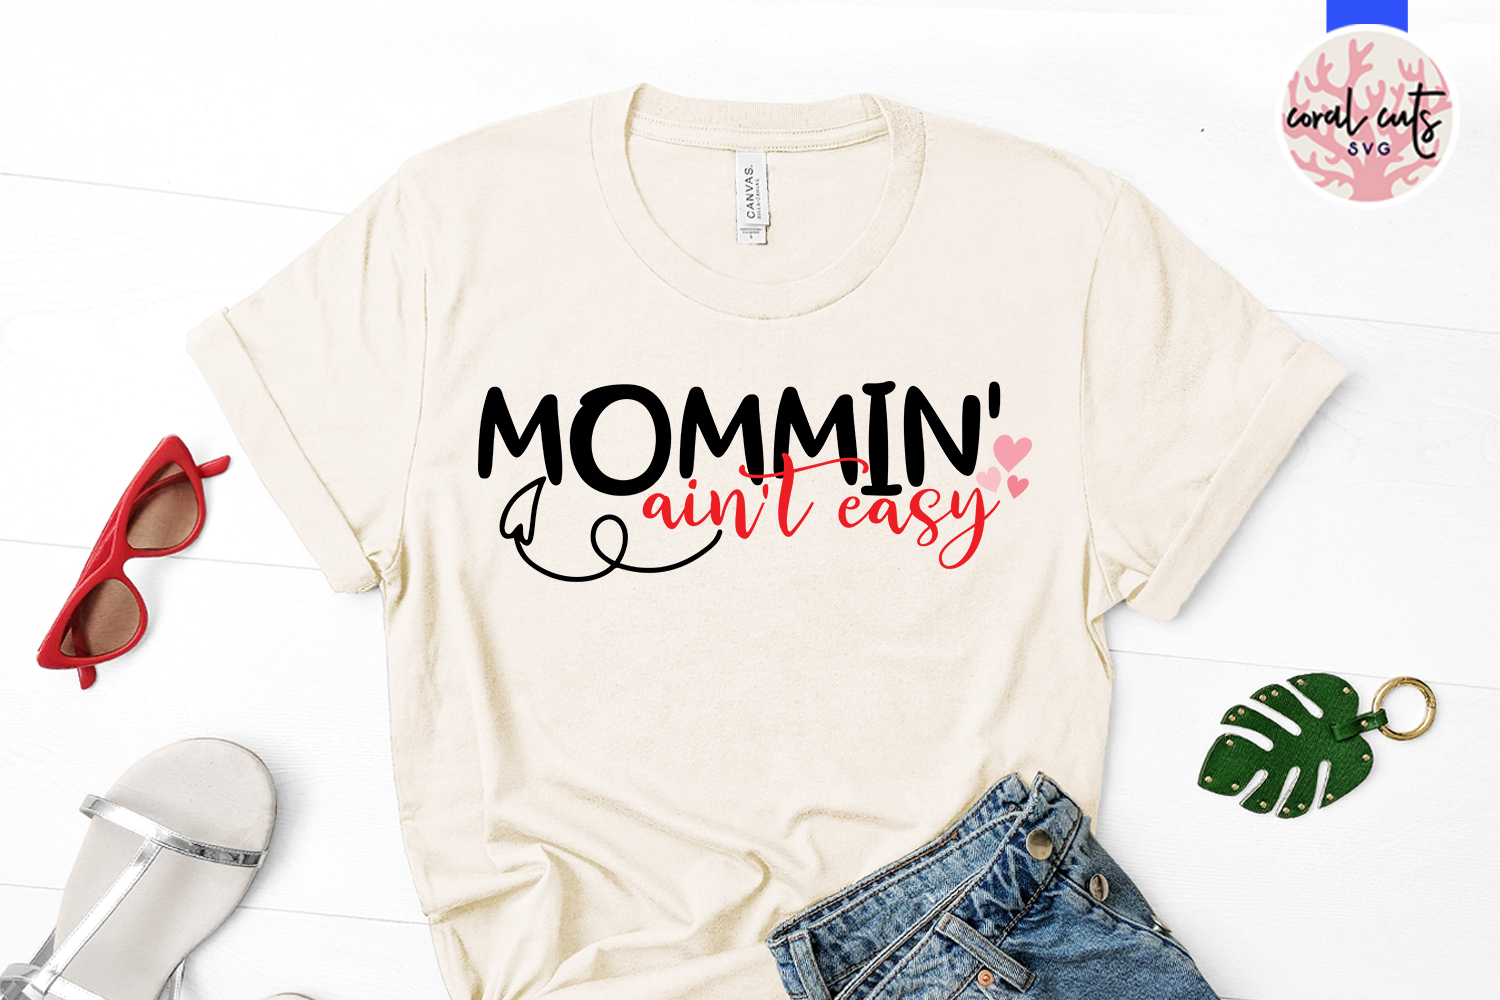 Mommin' ain't easy - Mother SVG EPS DXF PNG Cutting File example image 2